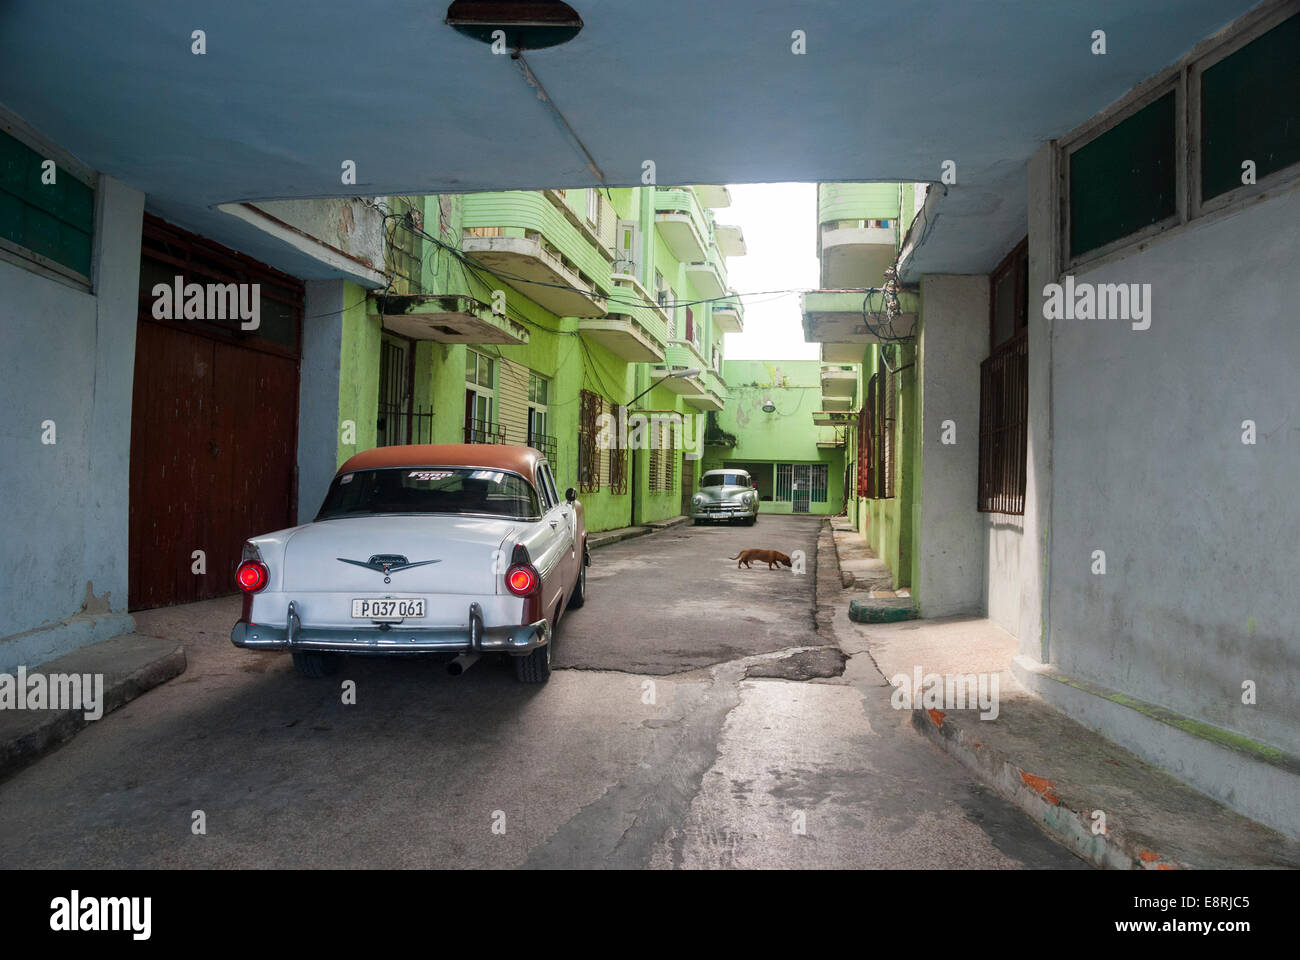 An Old Ford Fairlane At The Back Alley Entrance To An Apartment Building In  Central Havana Cuba